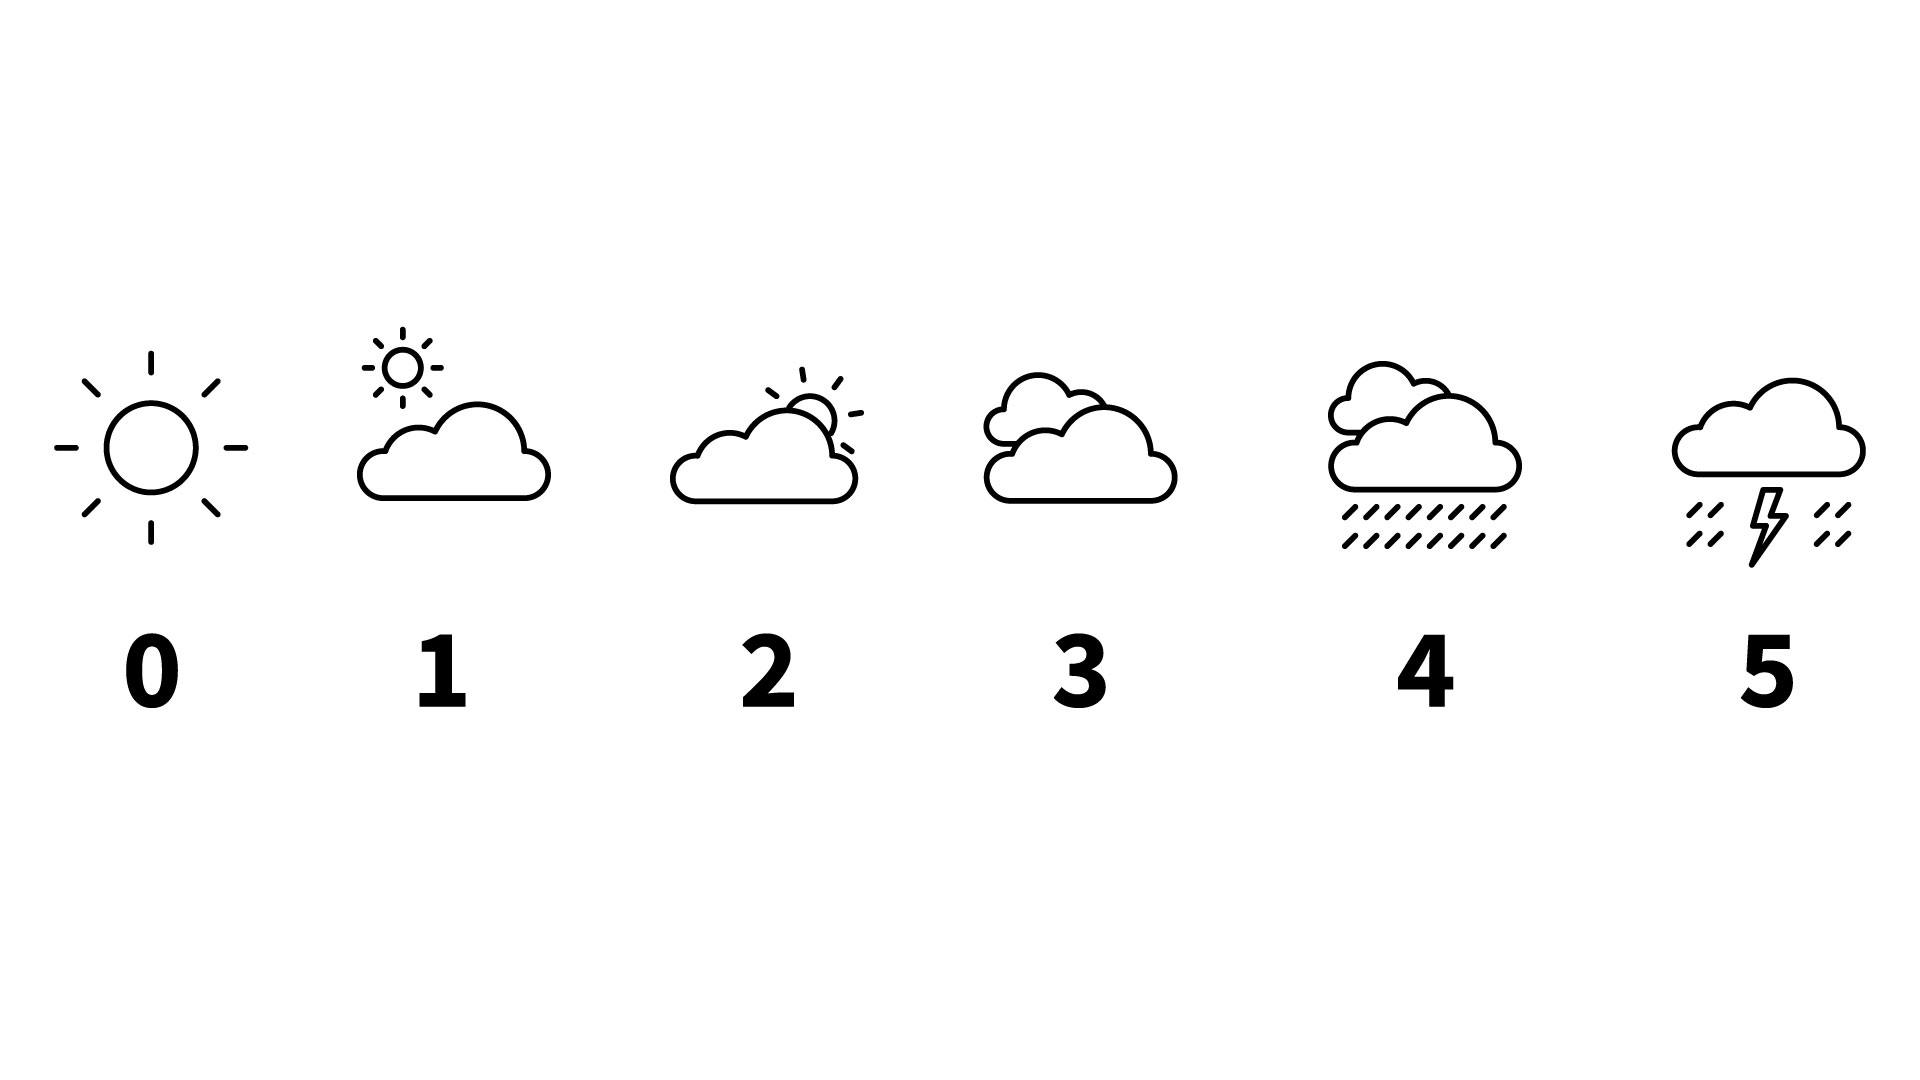 Pain scale from 0 to 5 starting with a sunny icon on the left and moving to a rain storm icon on the right side.